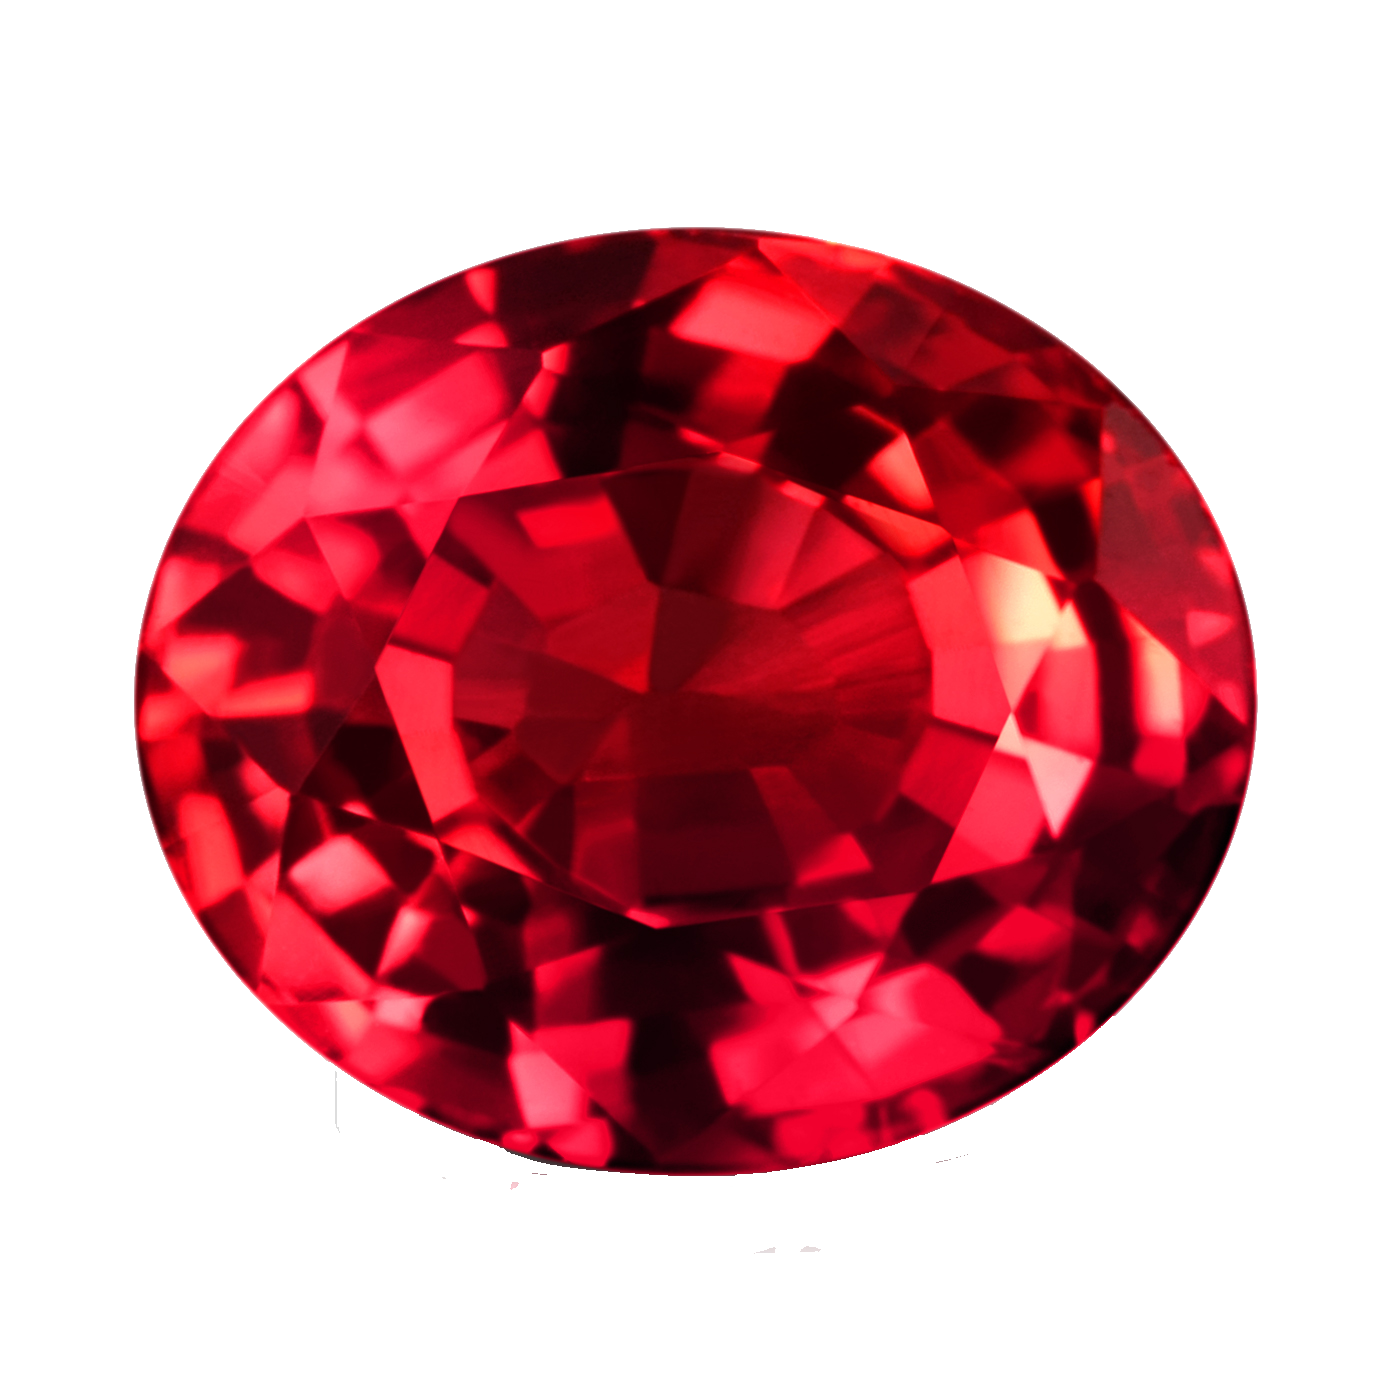 Diamond clipart ruby stone Stone Art Transparent Download Images